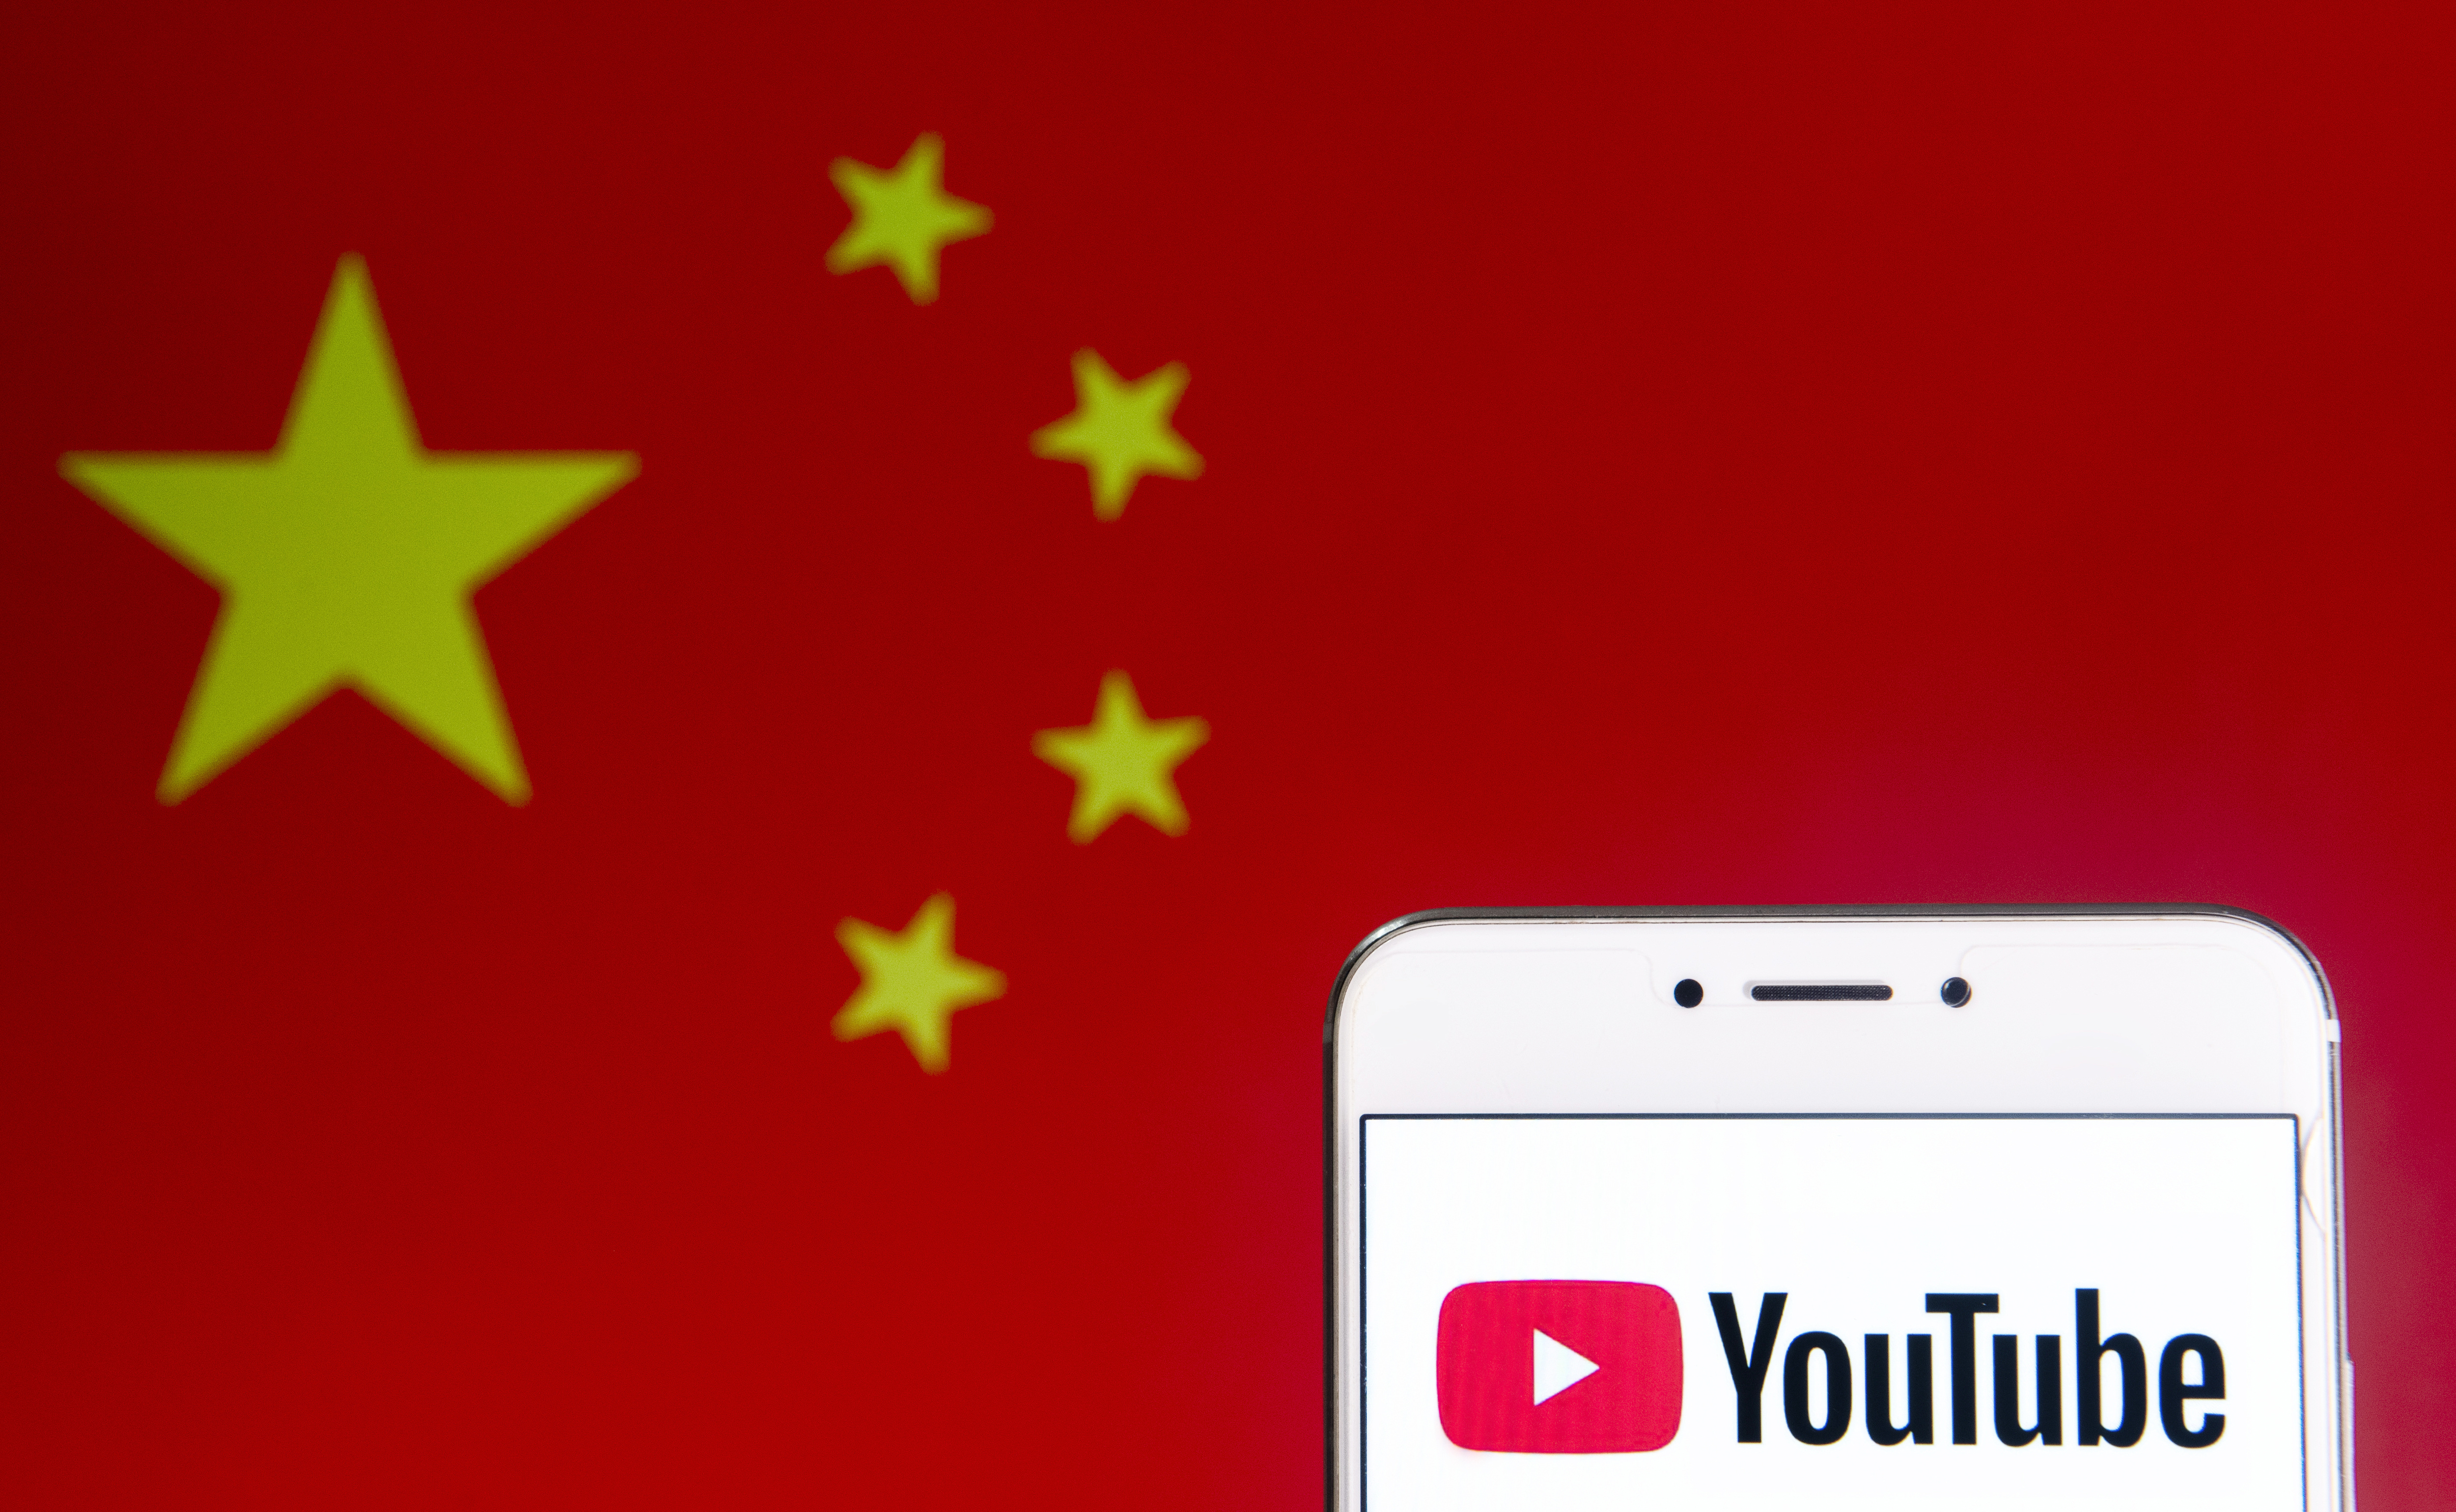 YouTube Channels Suspended For 'Coordinated' Influence Campaign Against Hong Kong